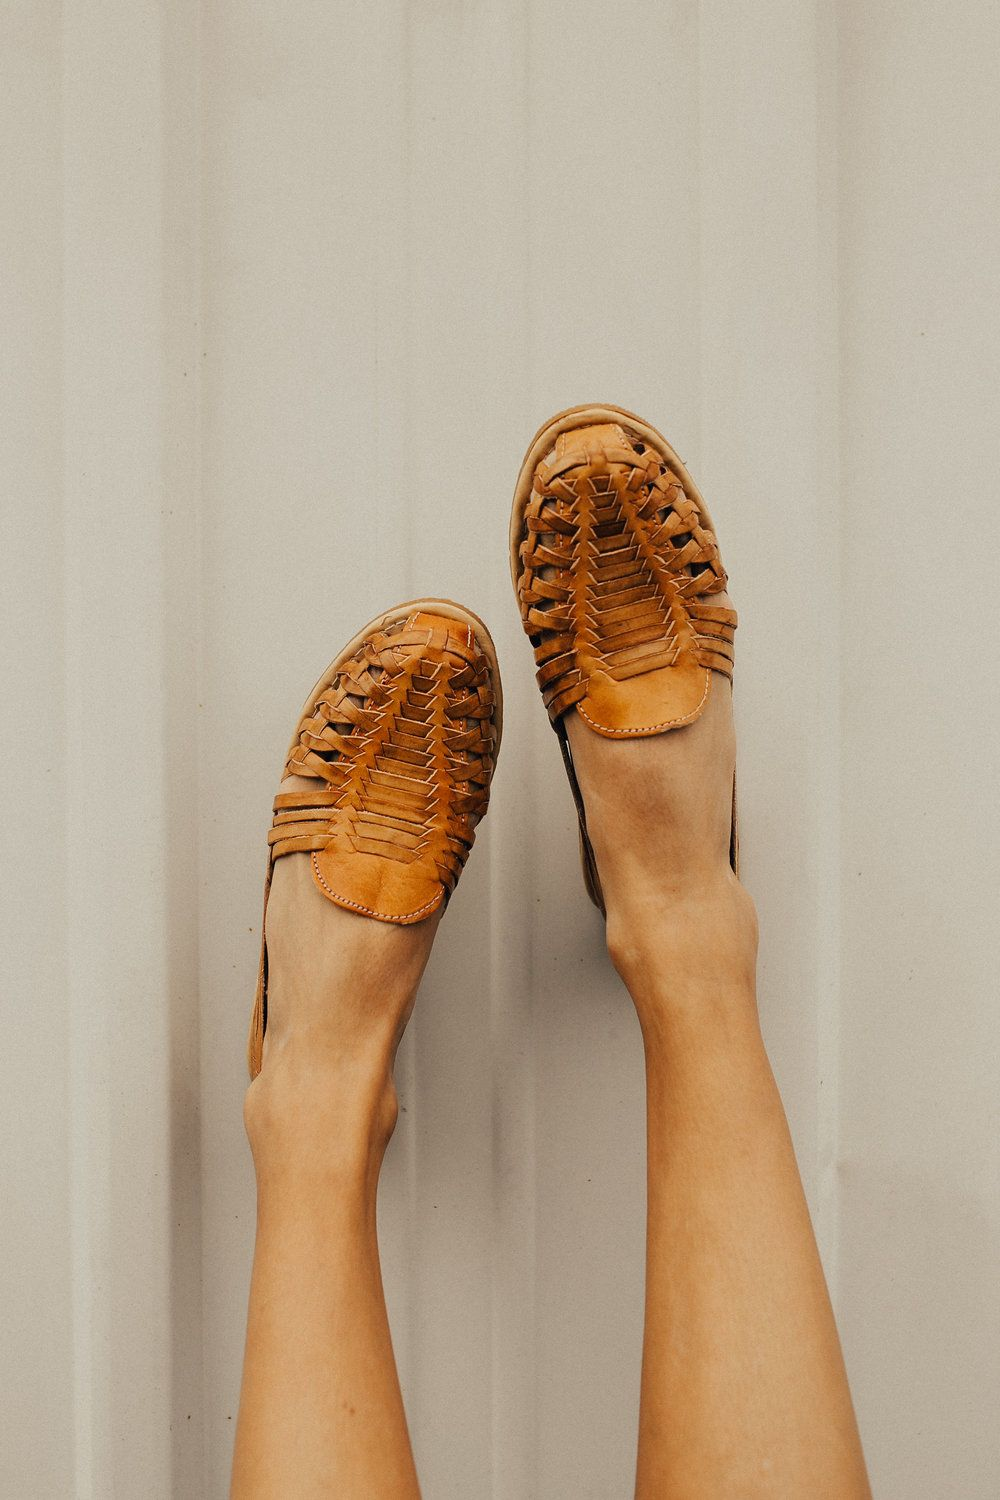 cb10ea71ec7e Toffee Huarache Leather Sandals Enclosed Rounded Toe + Heel Leather Weaving  Detail Gloss Coat If In